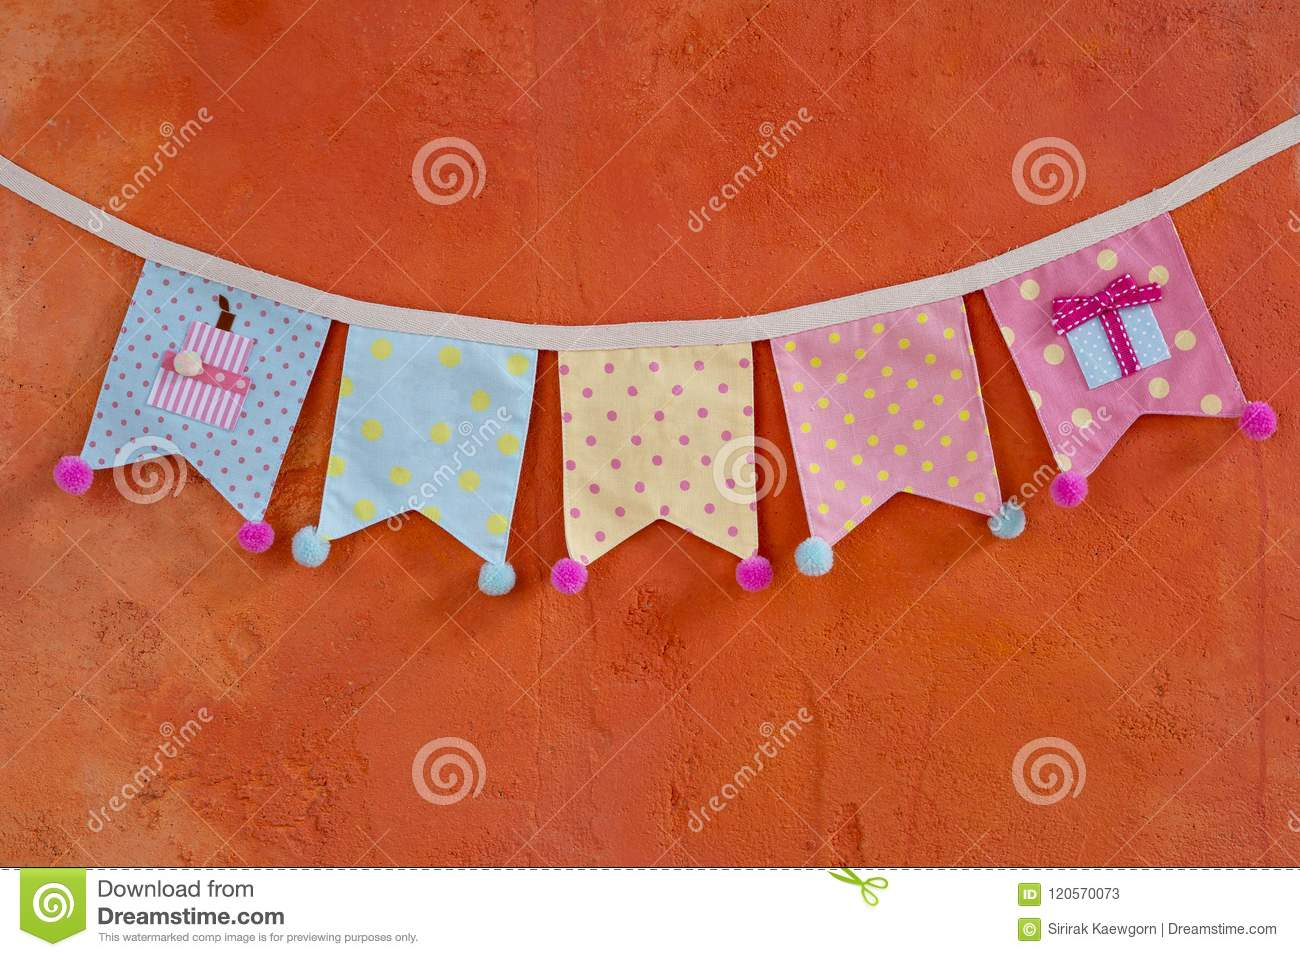 Colorful Fabric Party Flag Design Hanging Over Orange Cement Wall